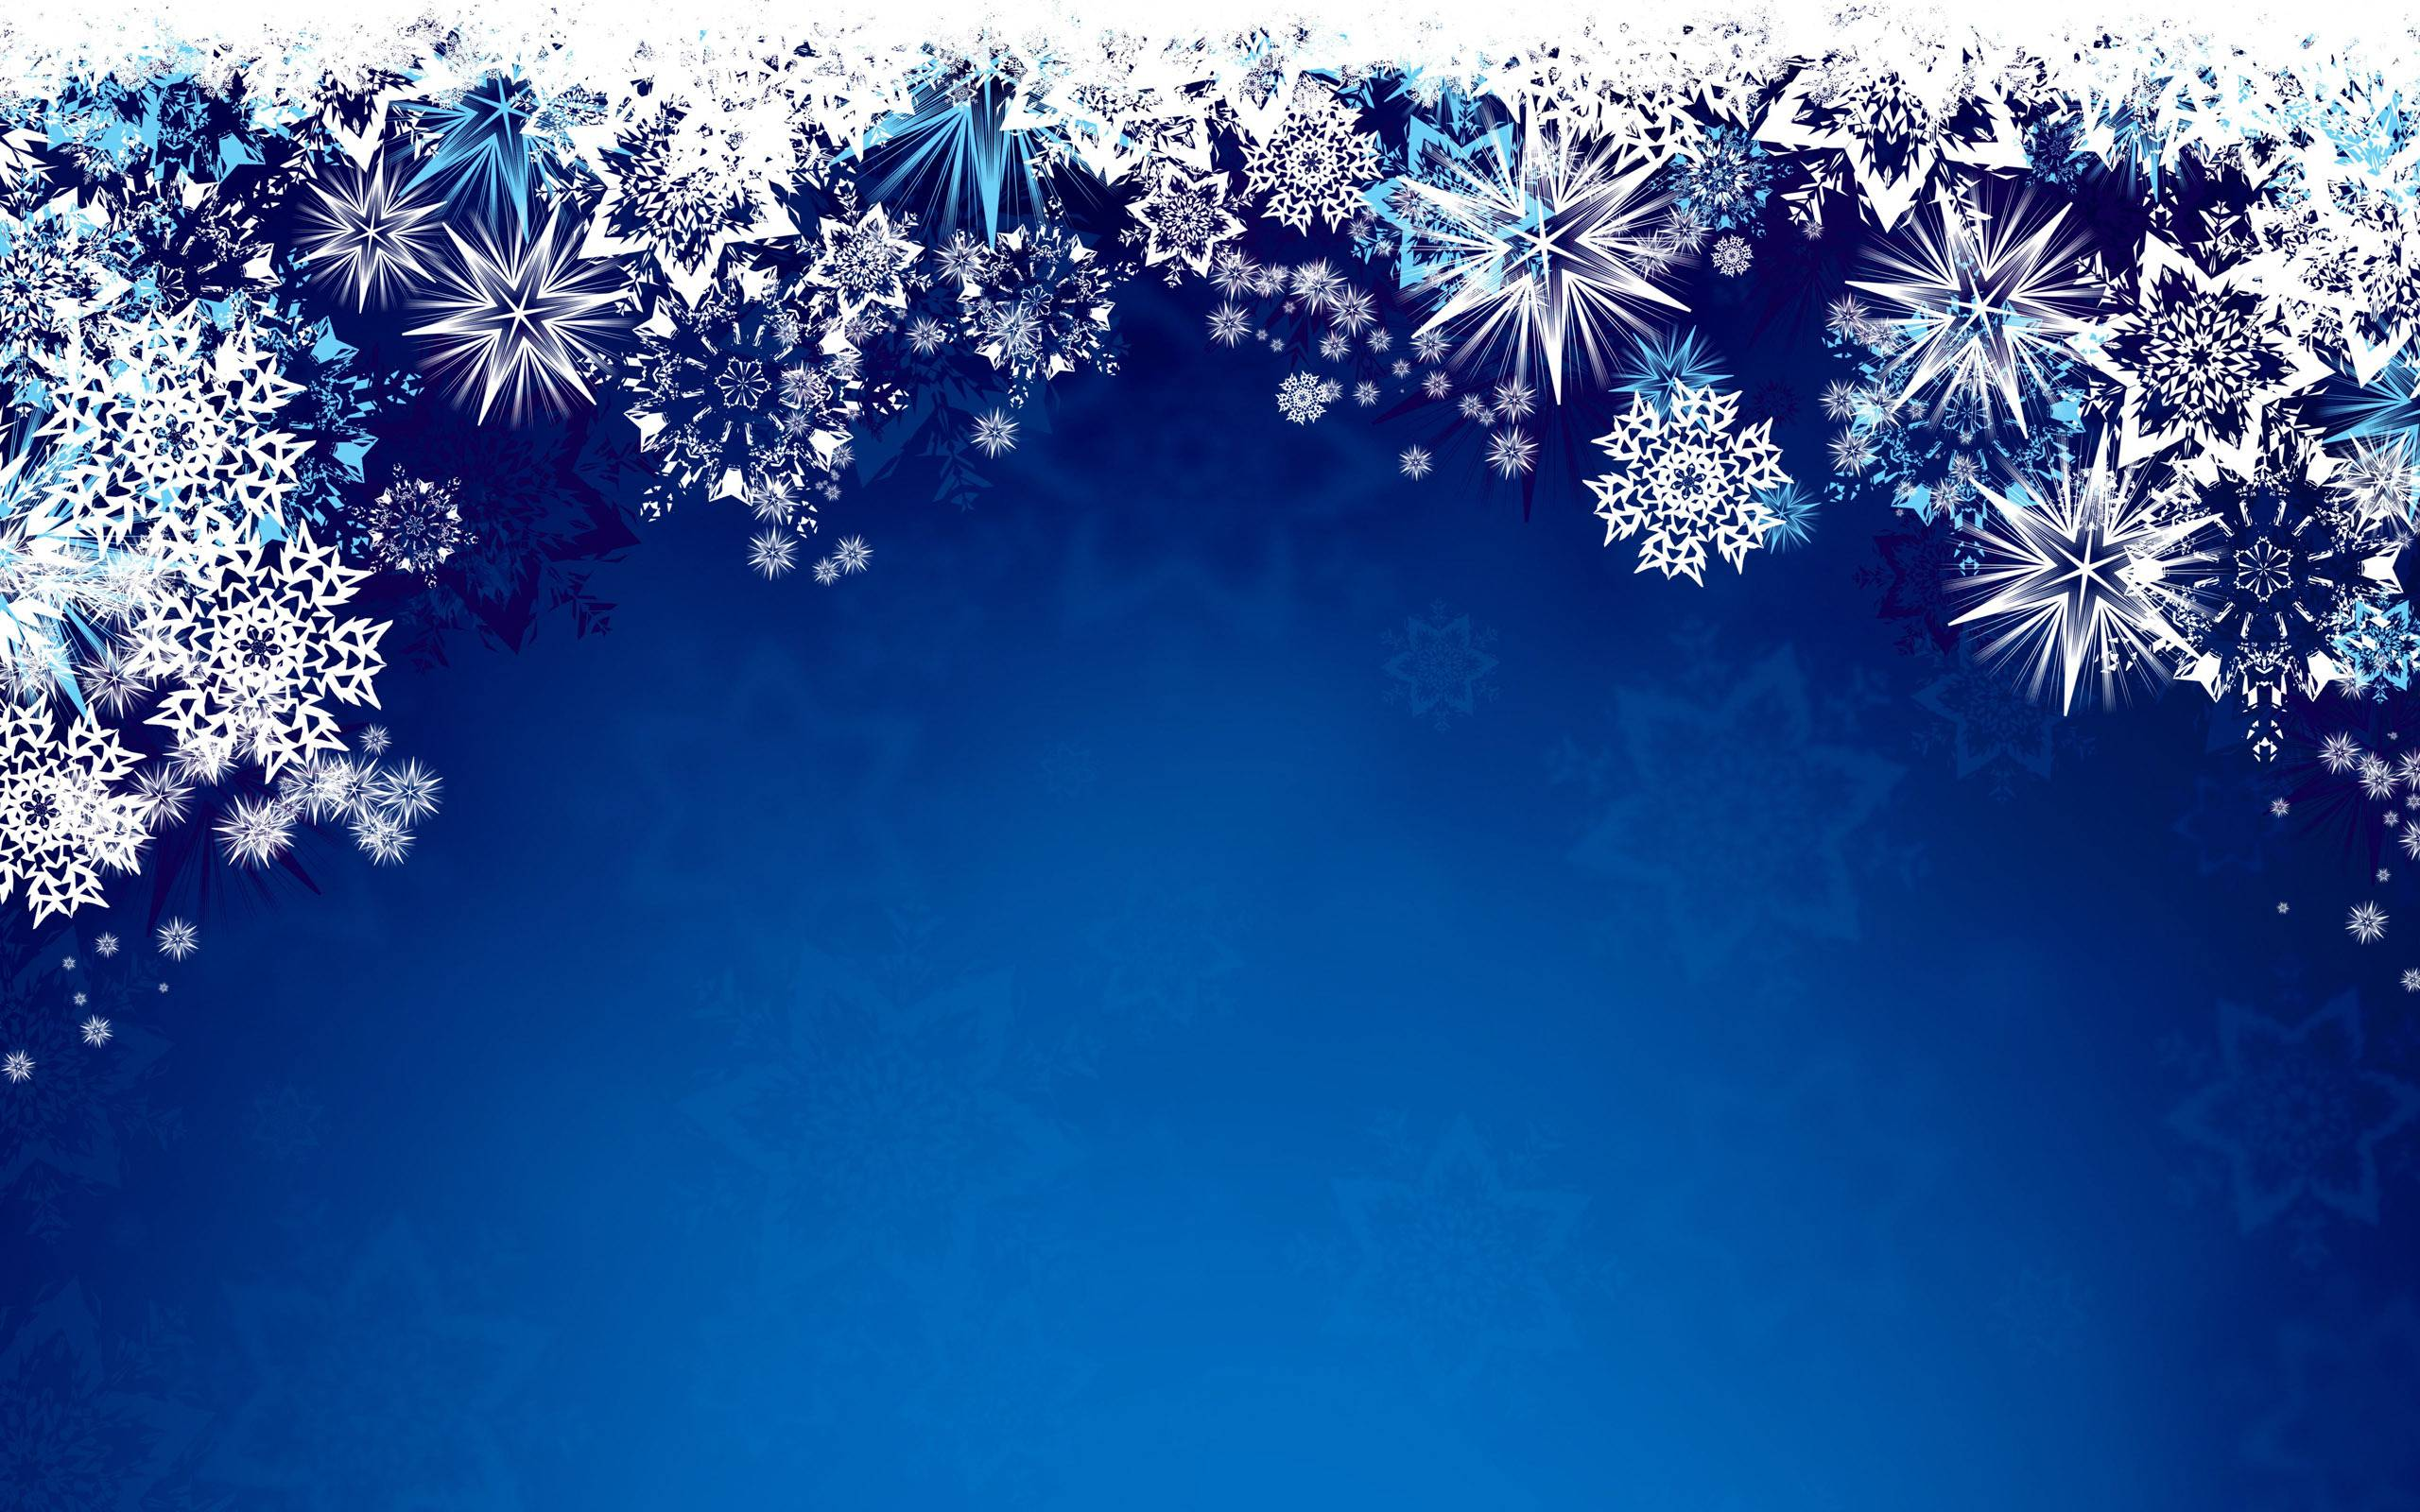 Snow flake backgrounds wallpaper cave